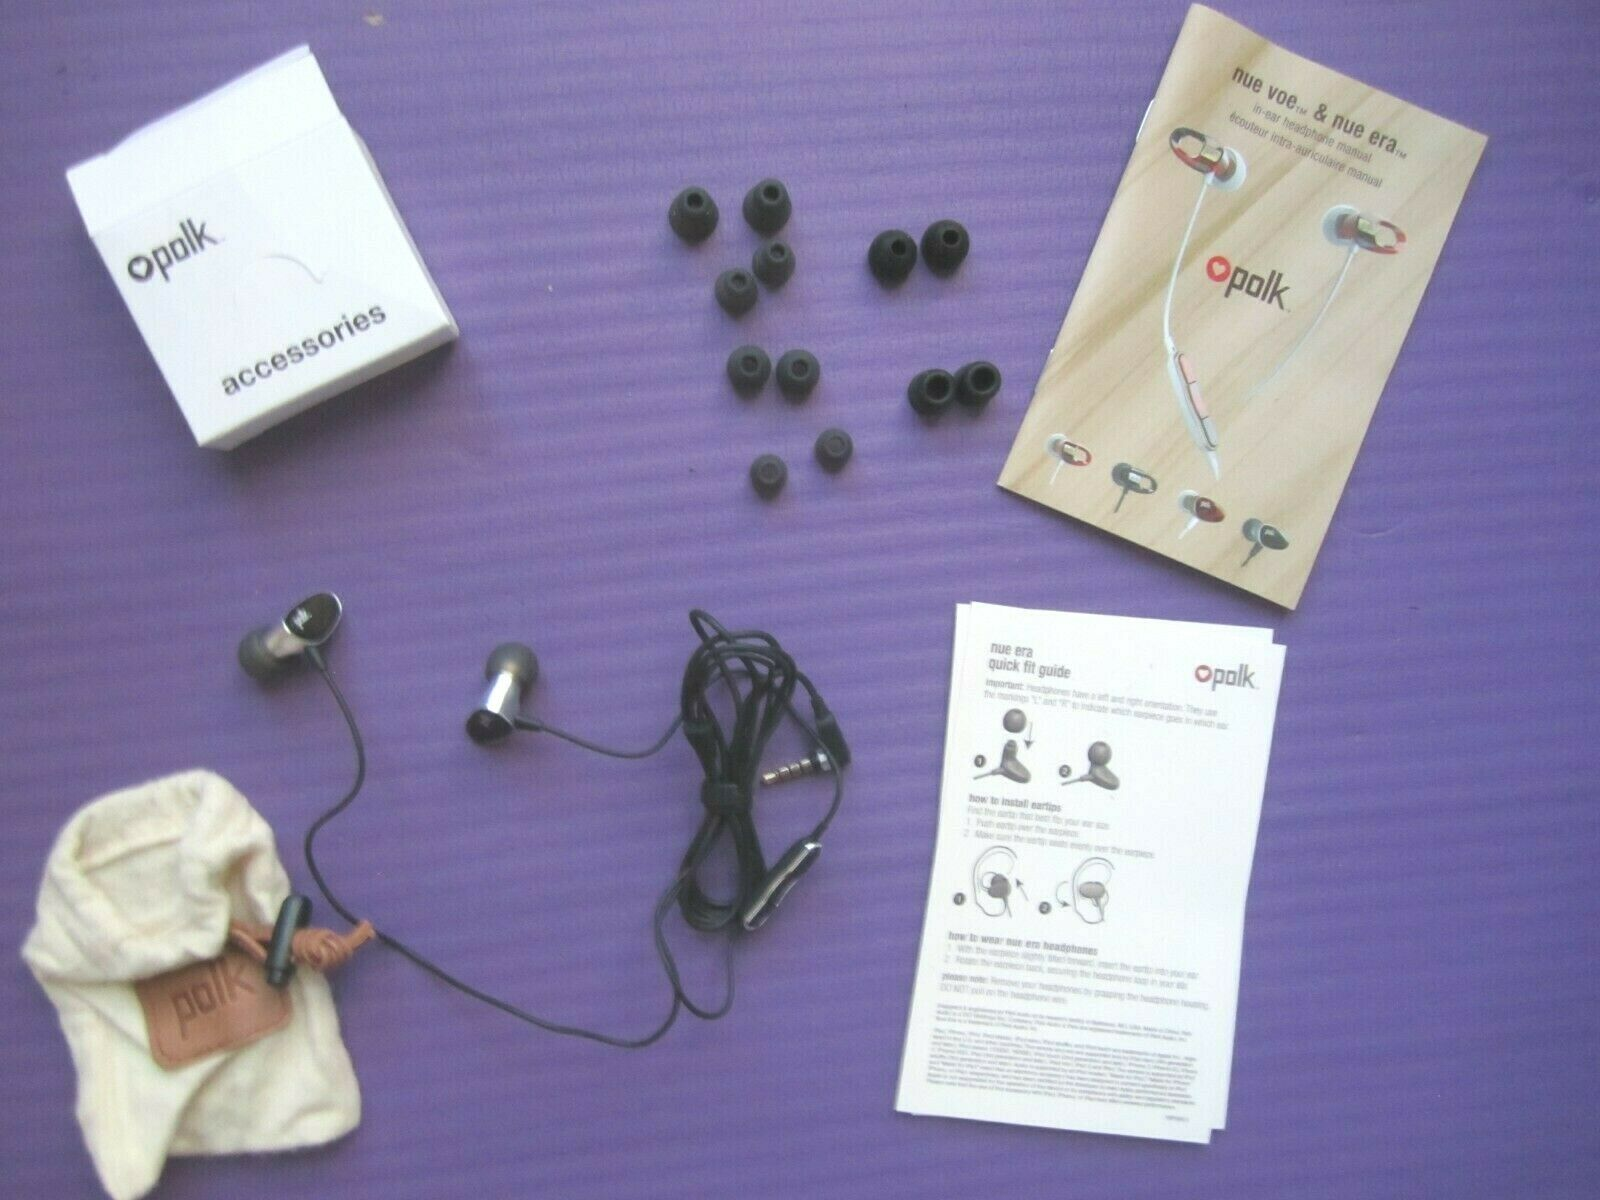 Polk Audio Nue Era In-Ear Headphones with 3 Button Controller and Build-in Mic